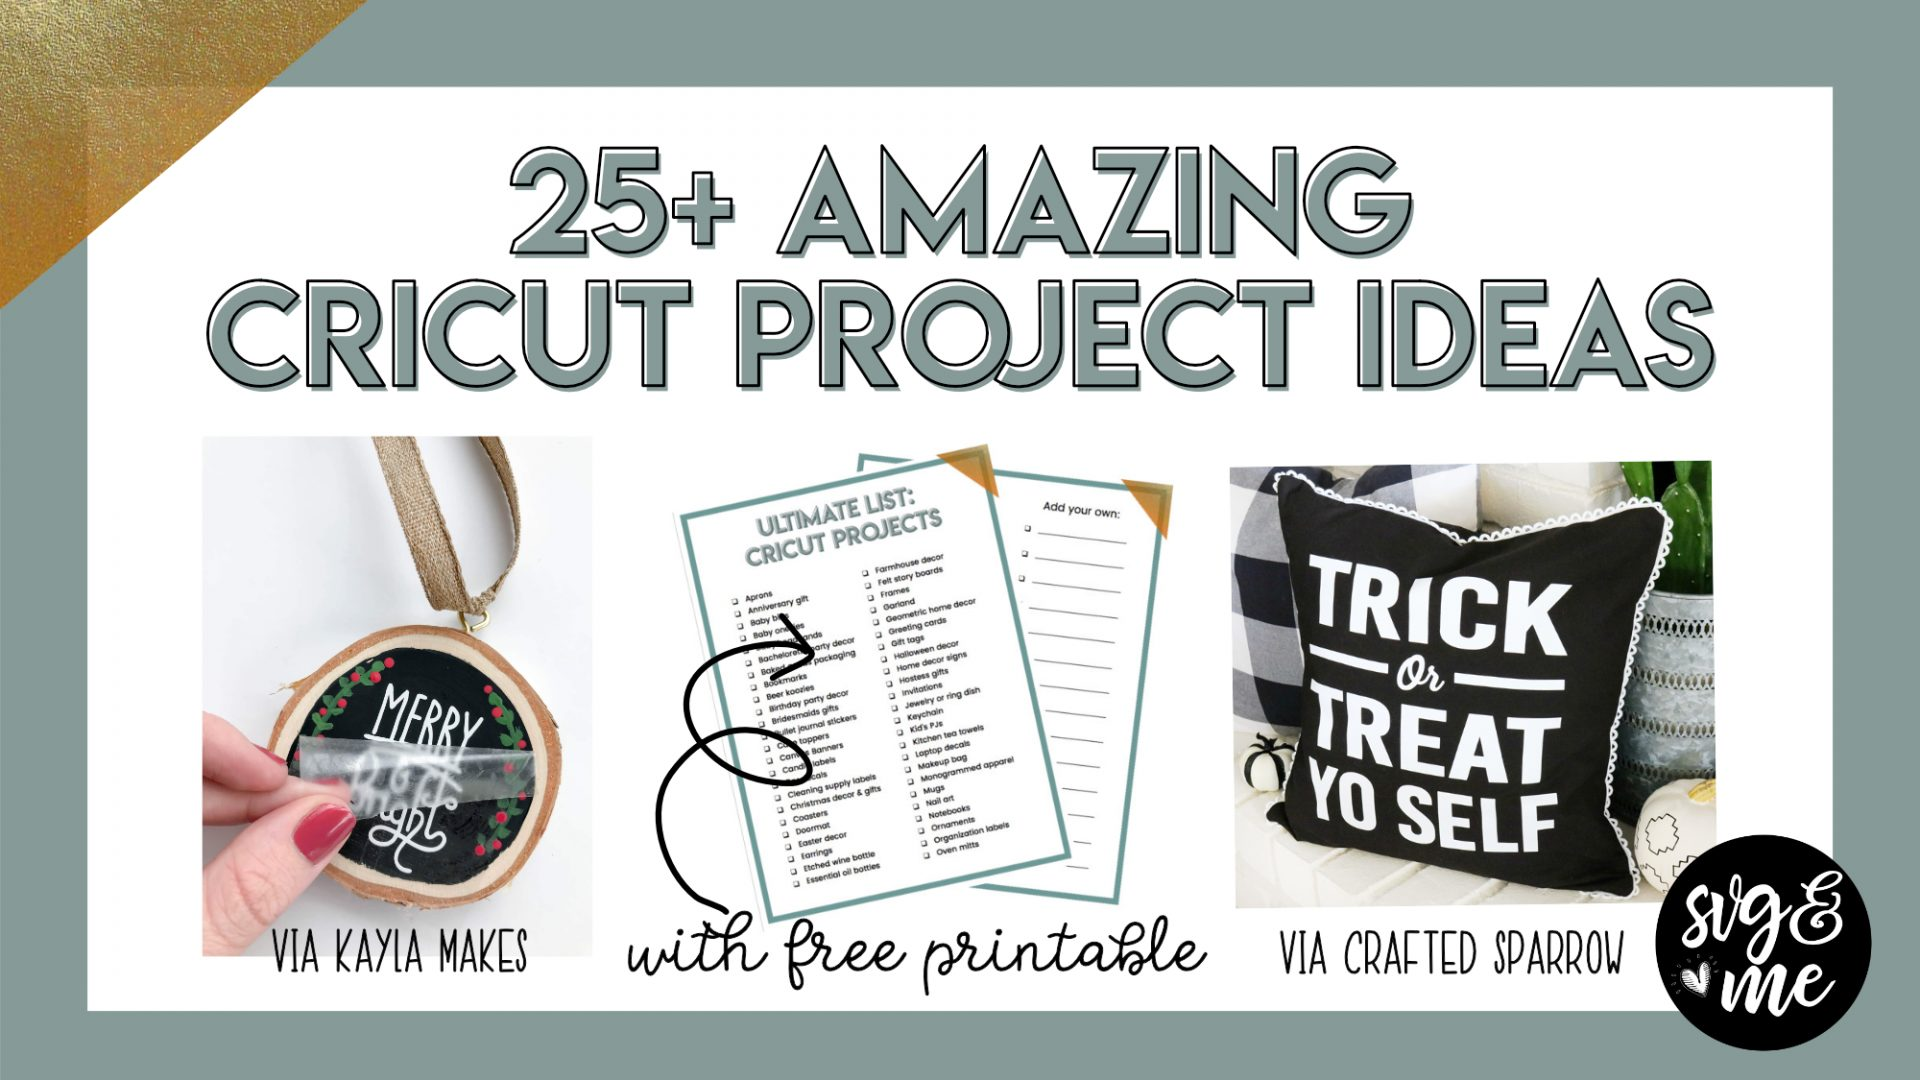 c3d6acd0 25+ Amazing Cricut Project Ideas to Try [Free Printable] - SVG & Me